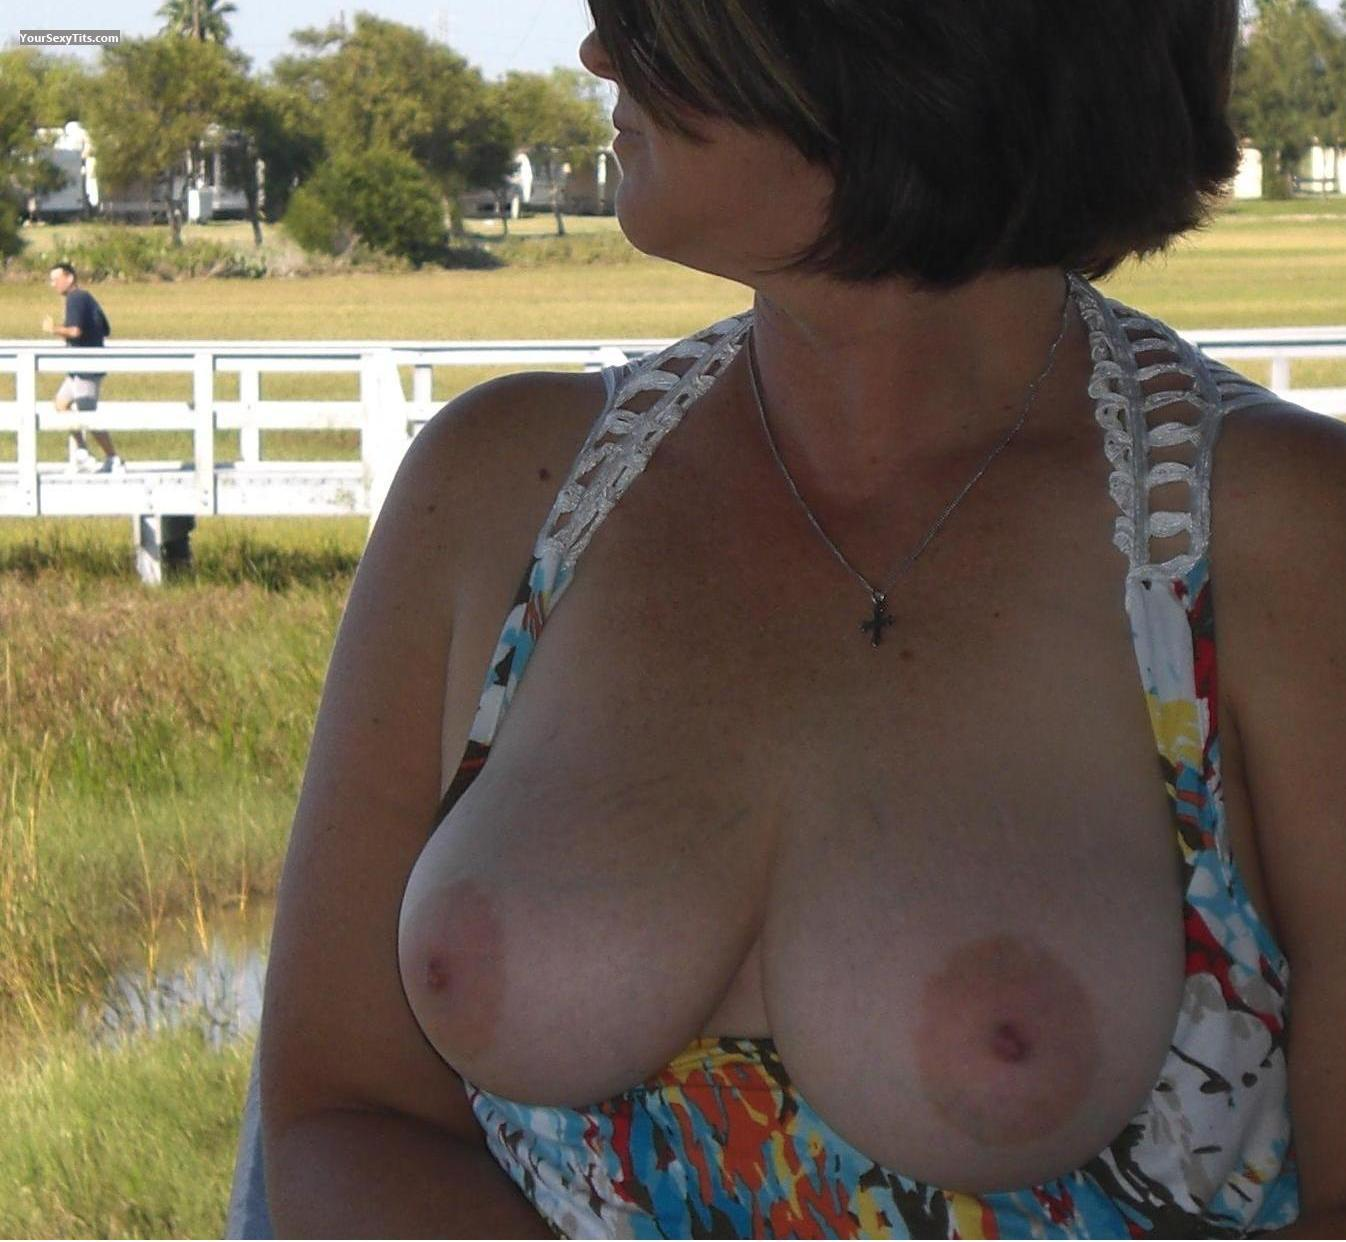 Tit Flash: Big Tits - Tx Sally from United States